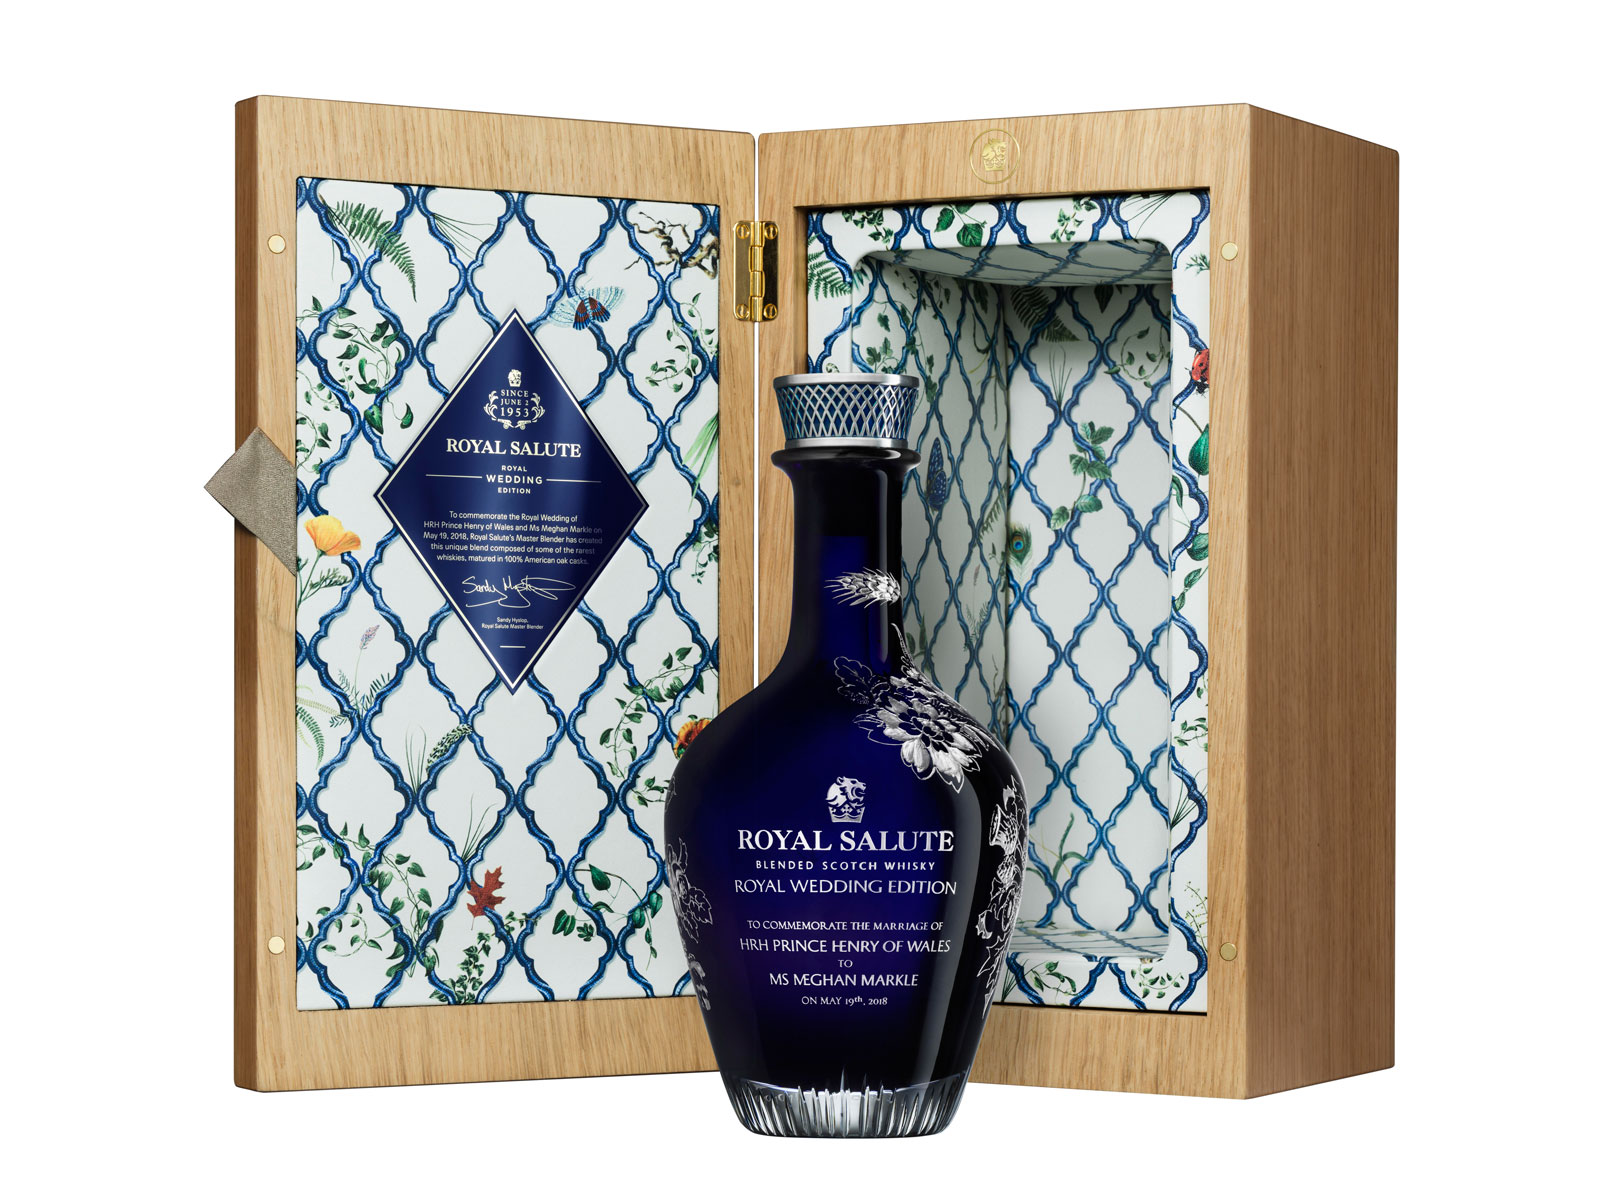 Royal Salute $10,000 Royal Wedding Whisky